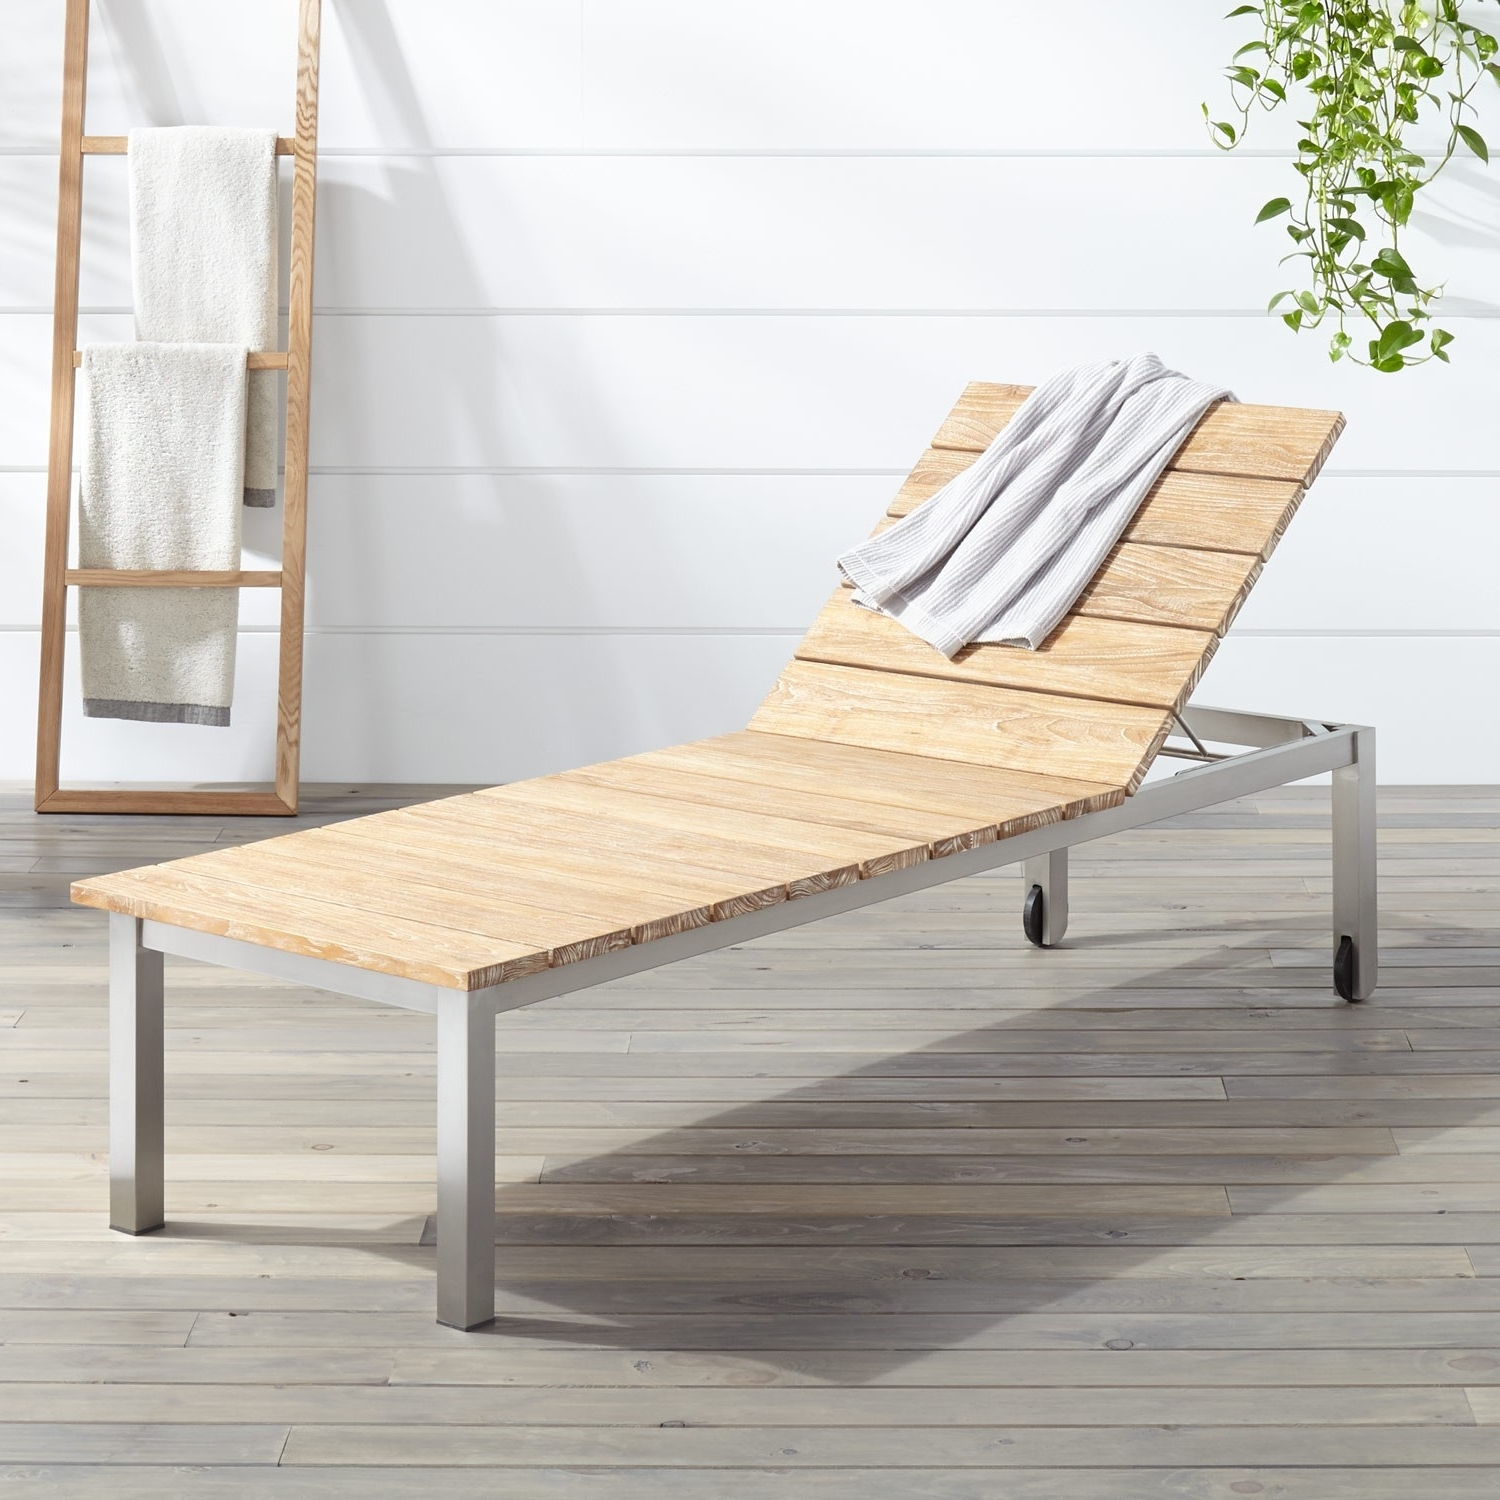 Teak Chaise Lounges With Regard To Trendy Macon Teak Outdoor Chaise Lounge Chair – Whitewash – Outdoor (View 11 of 15)